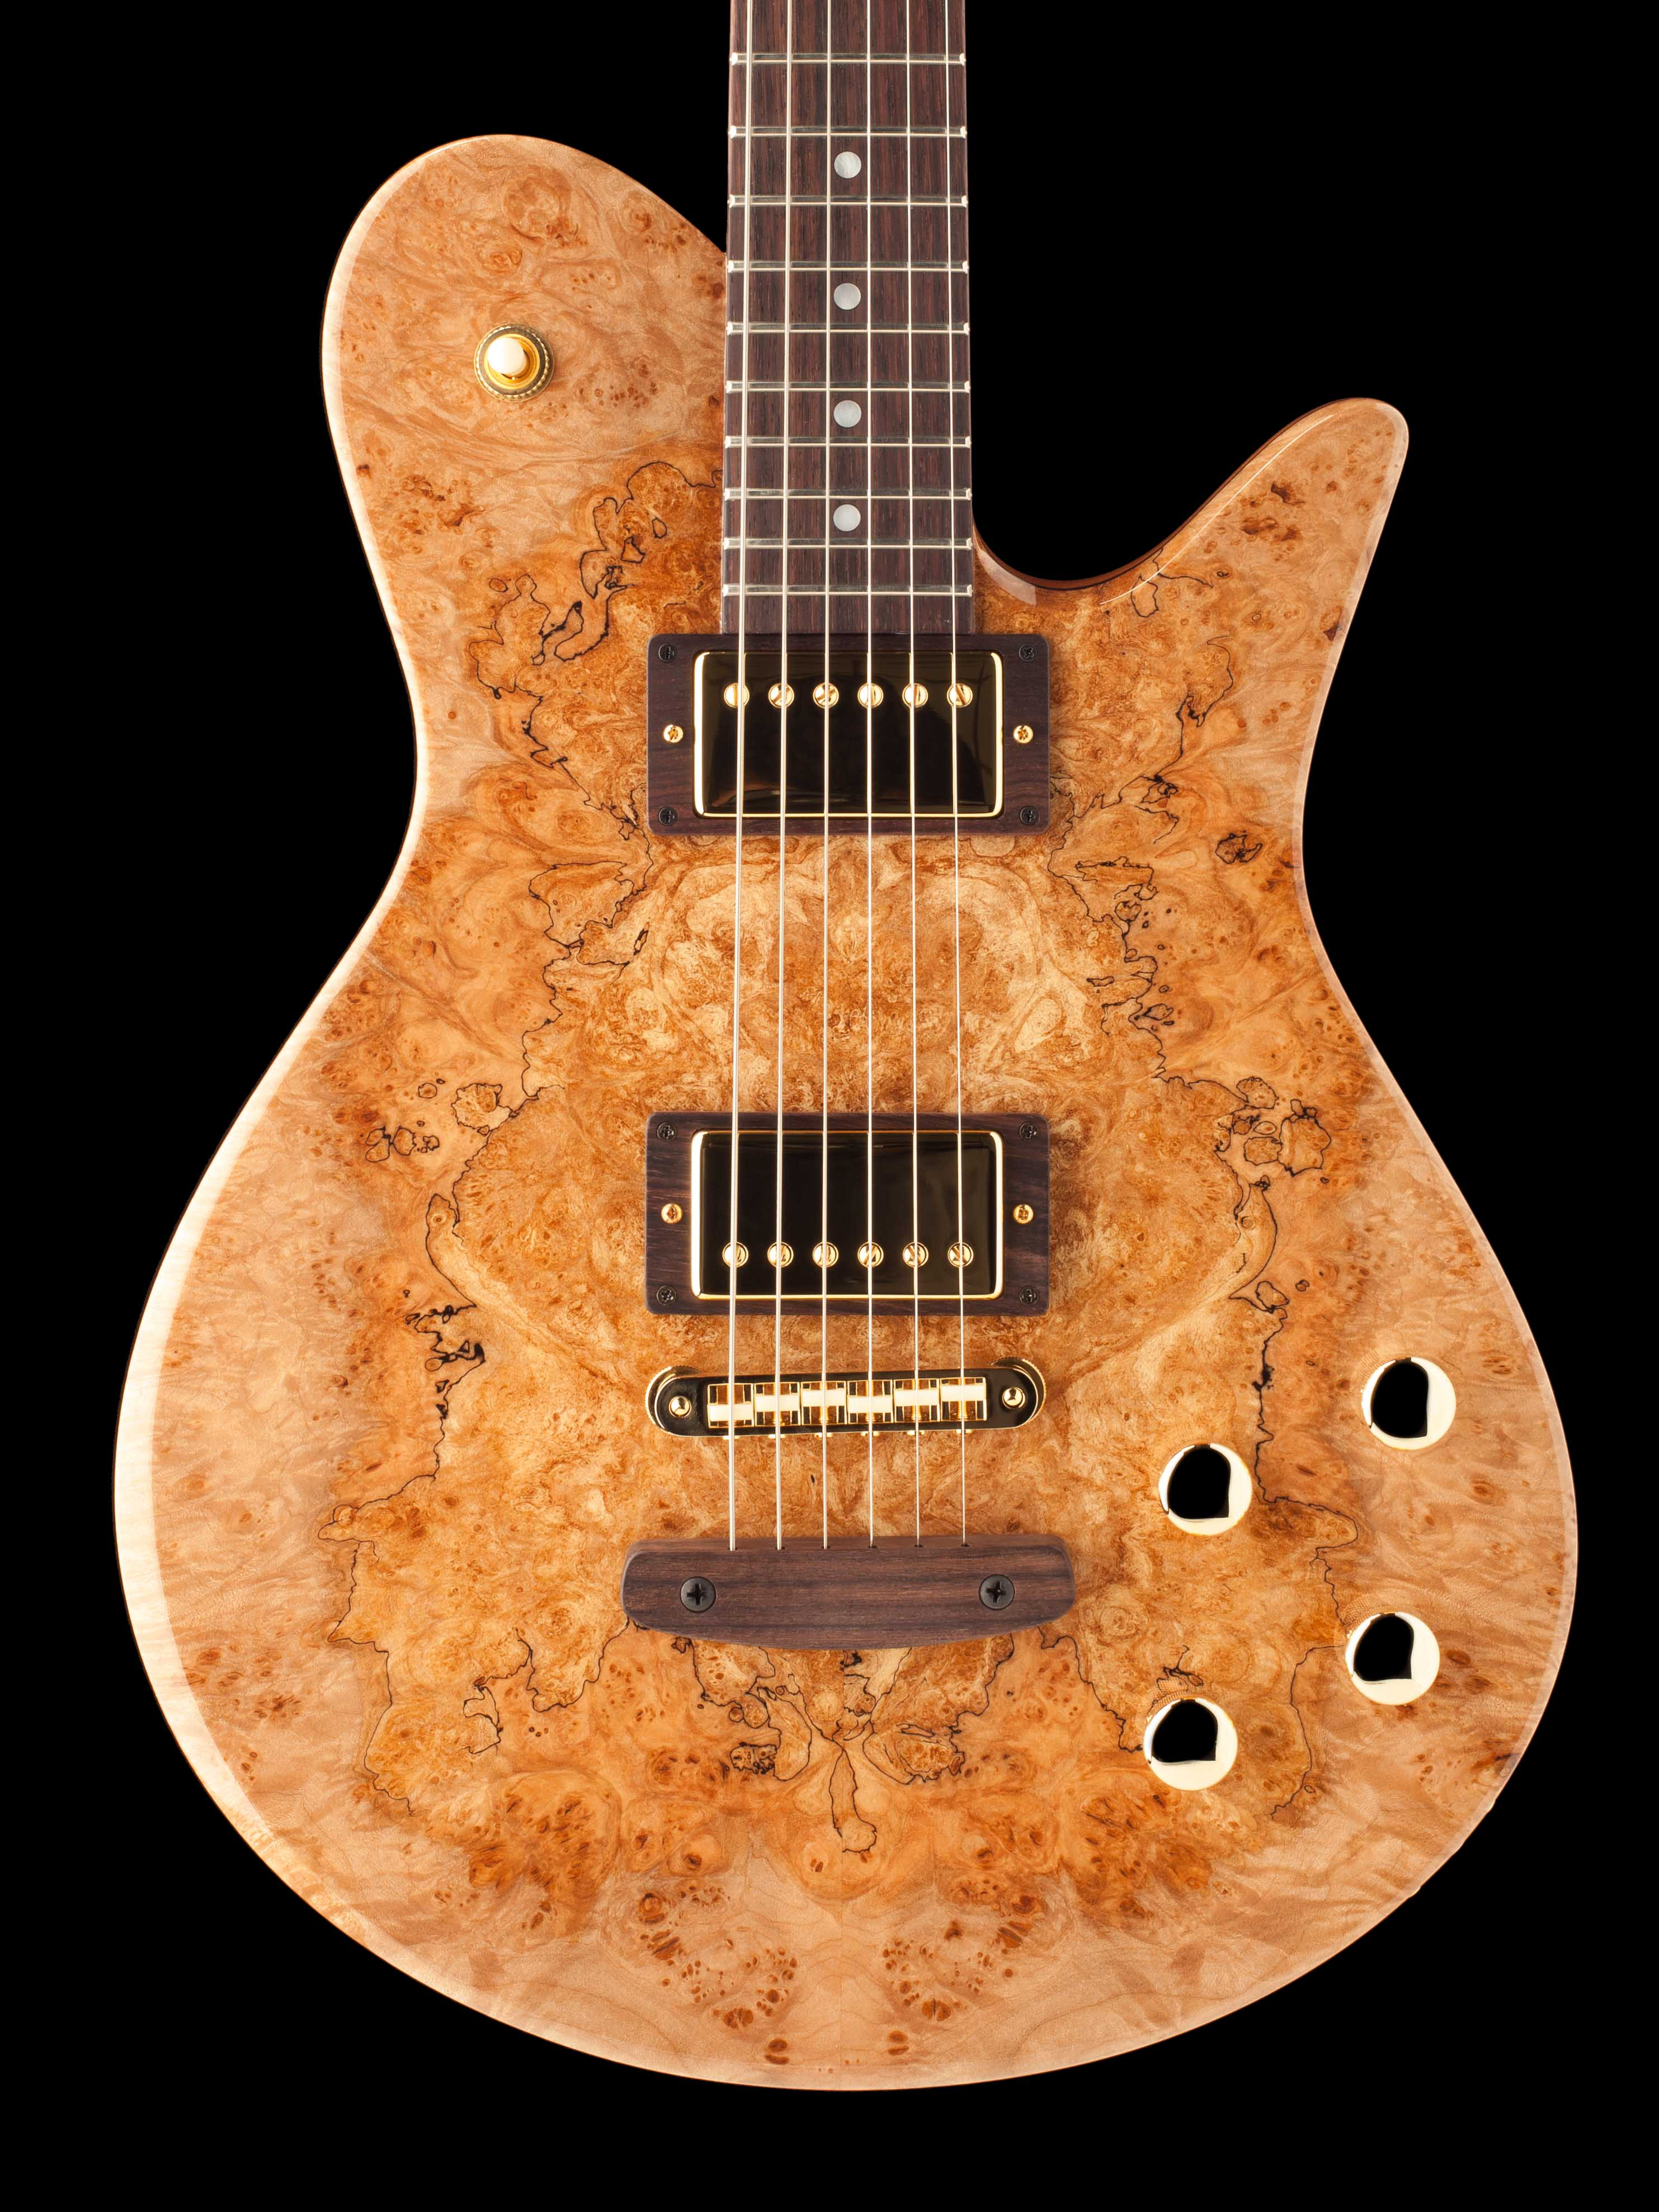 6-String Guitar With Burled Topwood